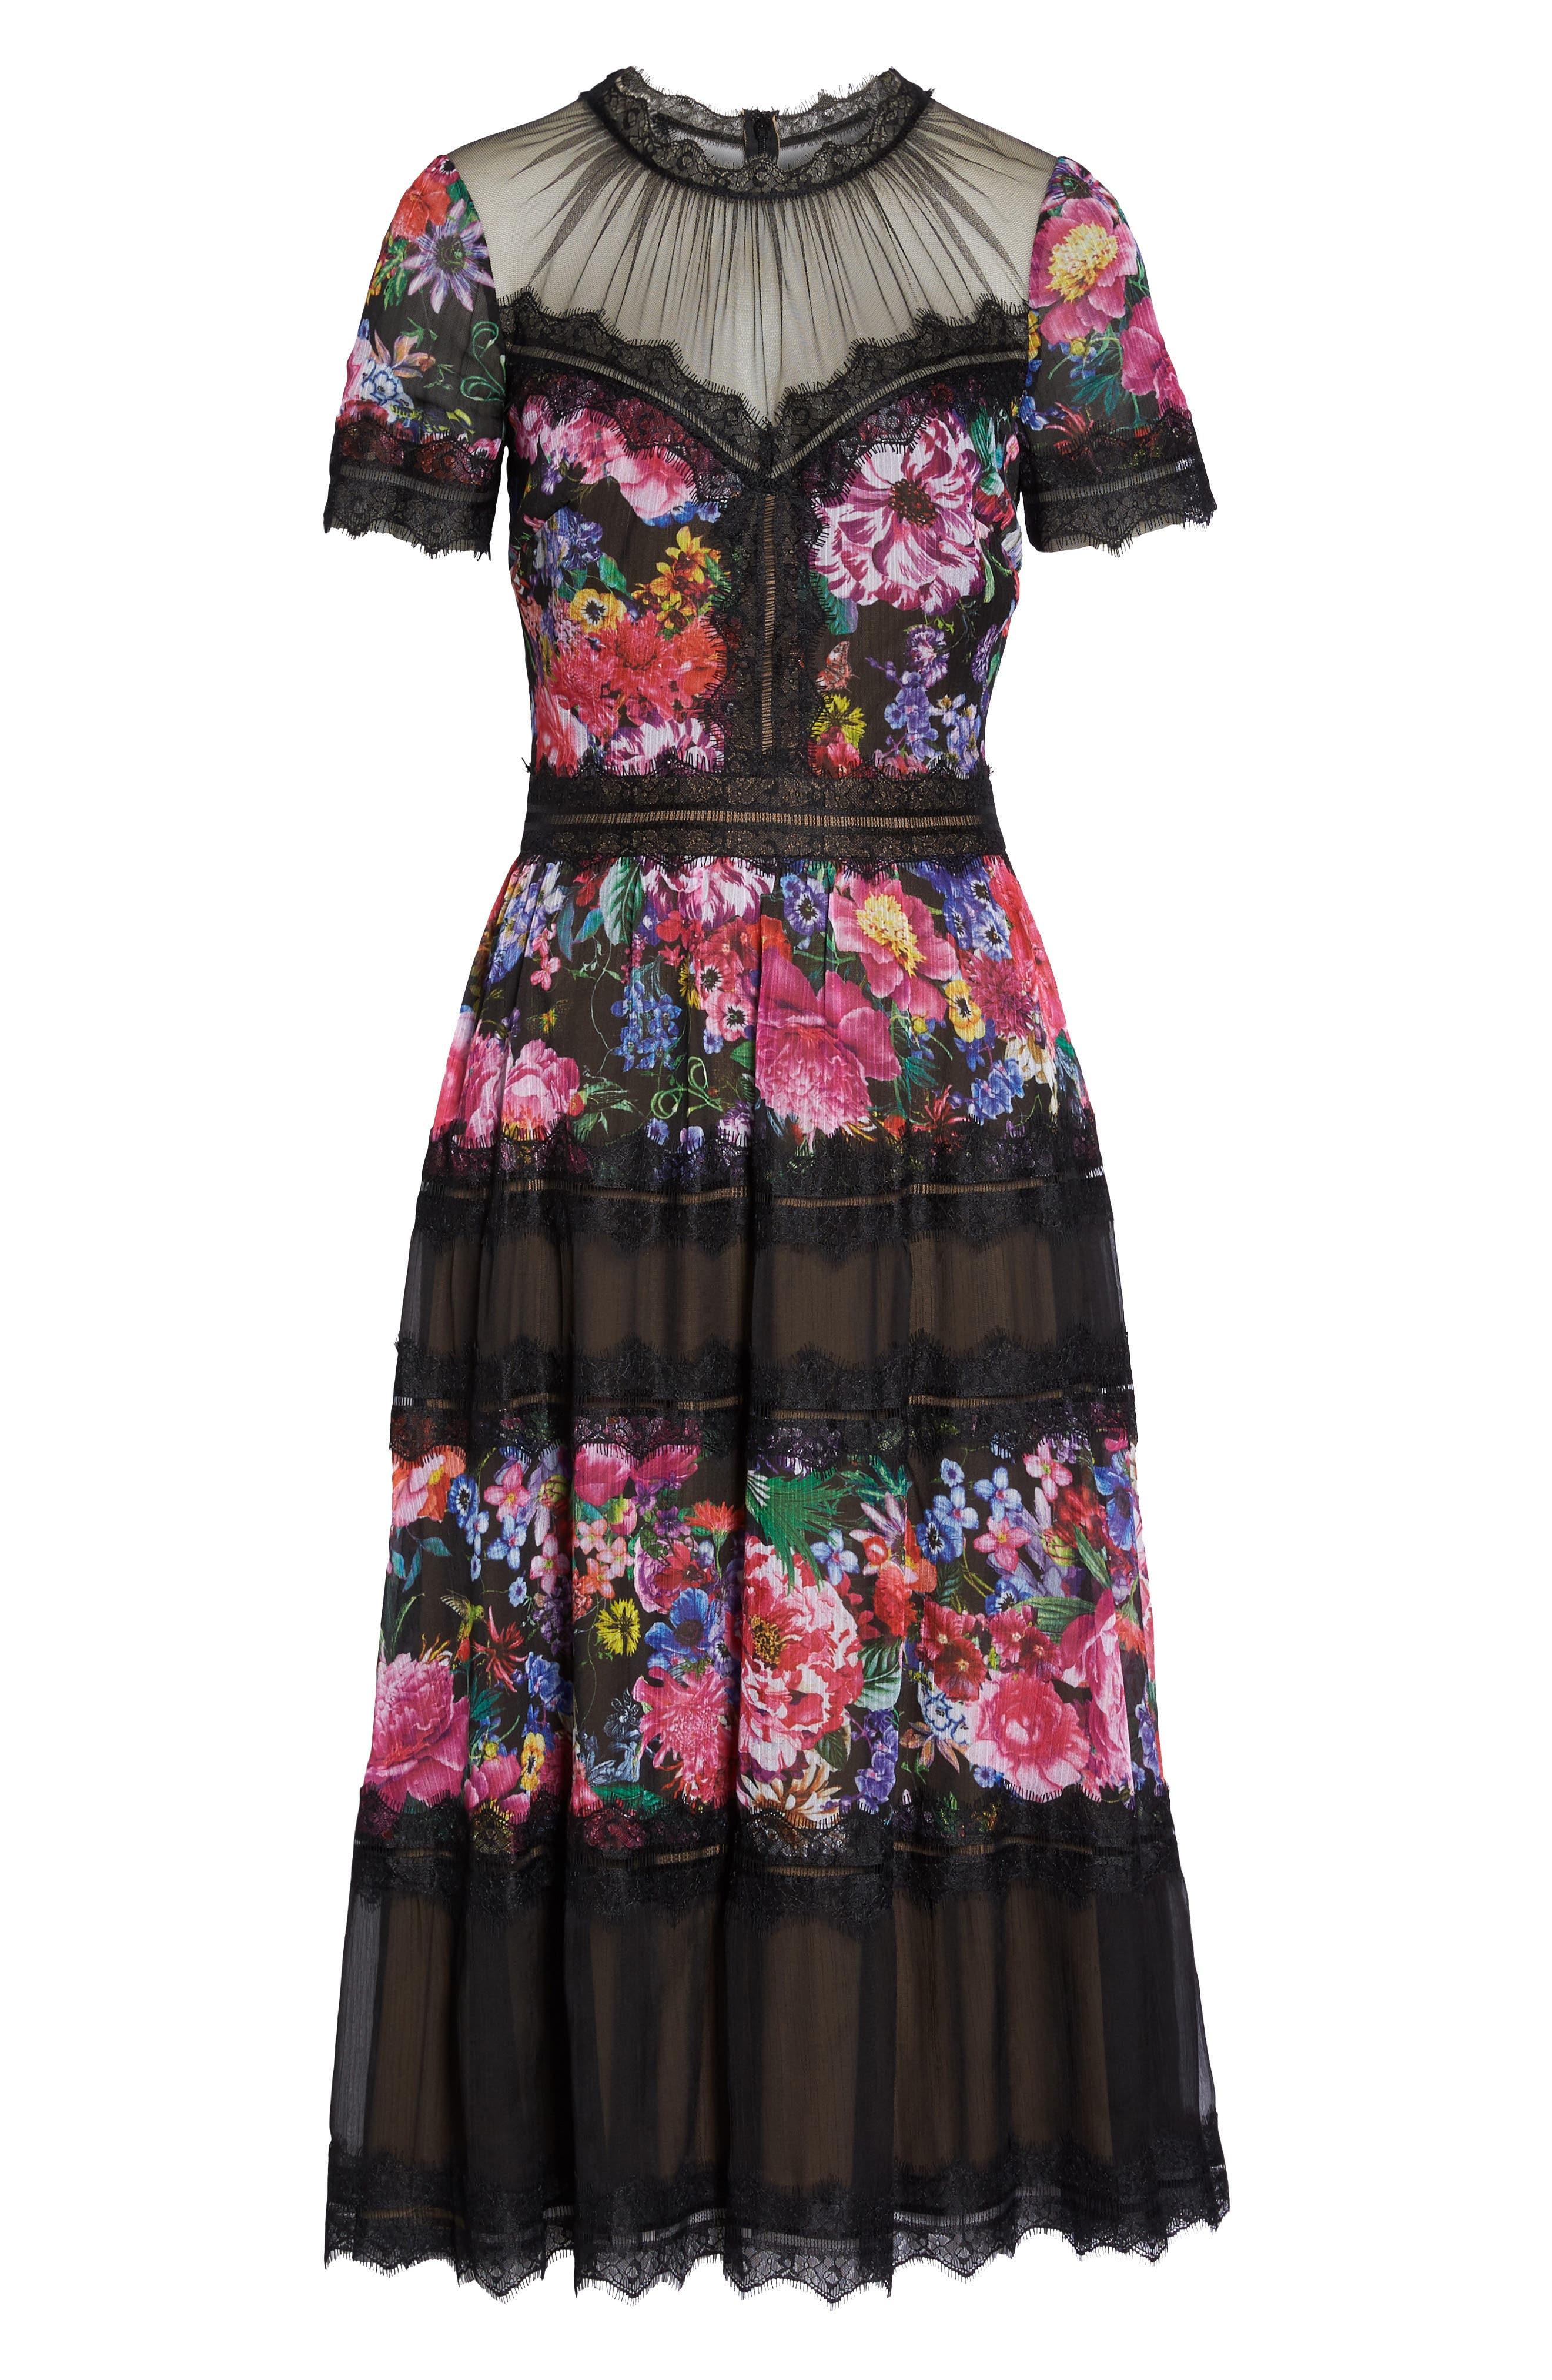 Lace Floral Midi Dress,                             Alternate thumbnail 6, color,                             Black/ Floral